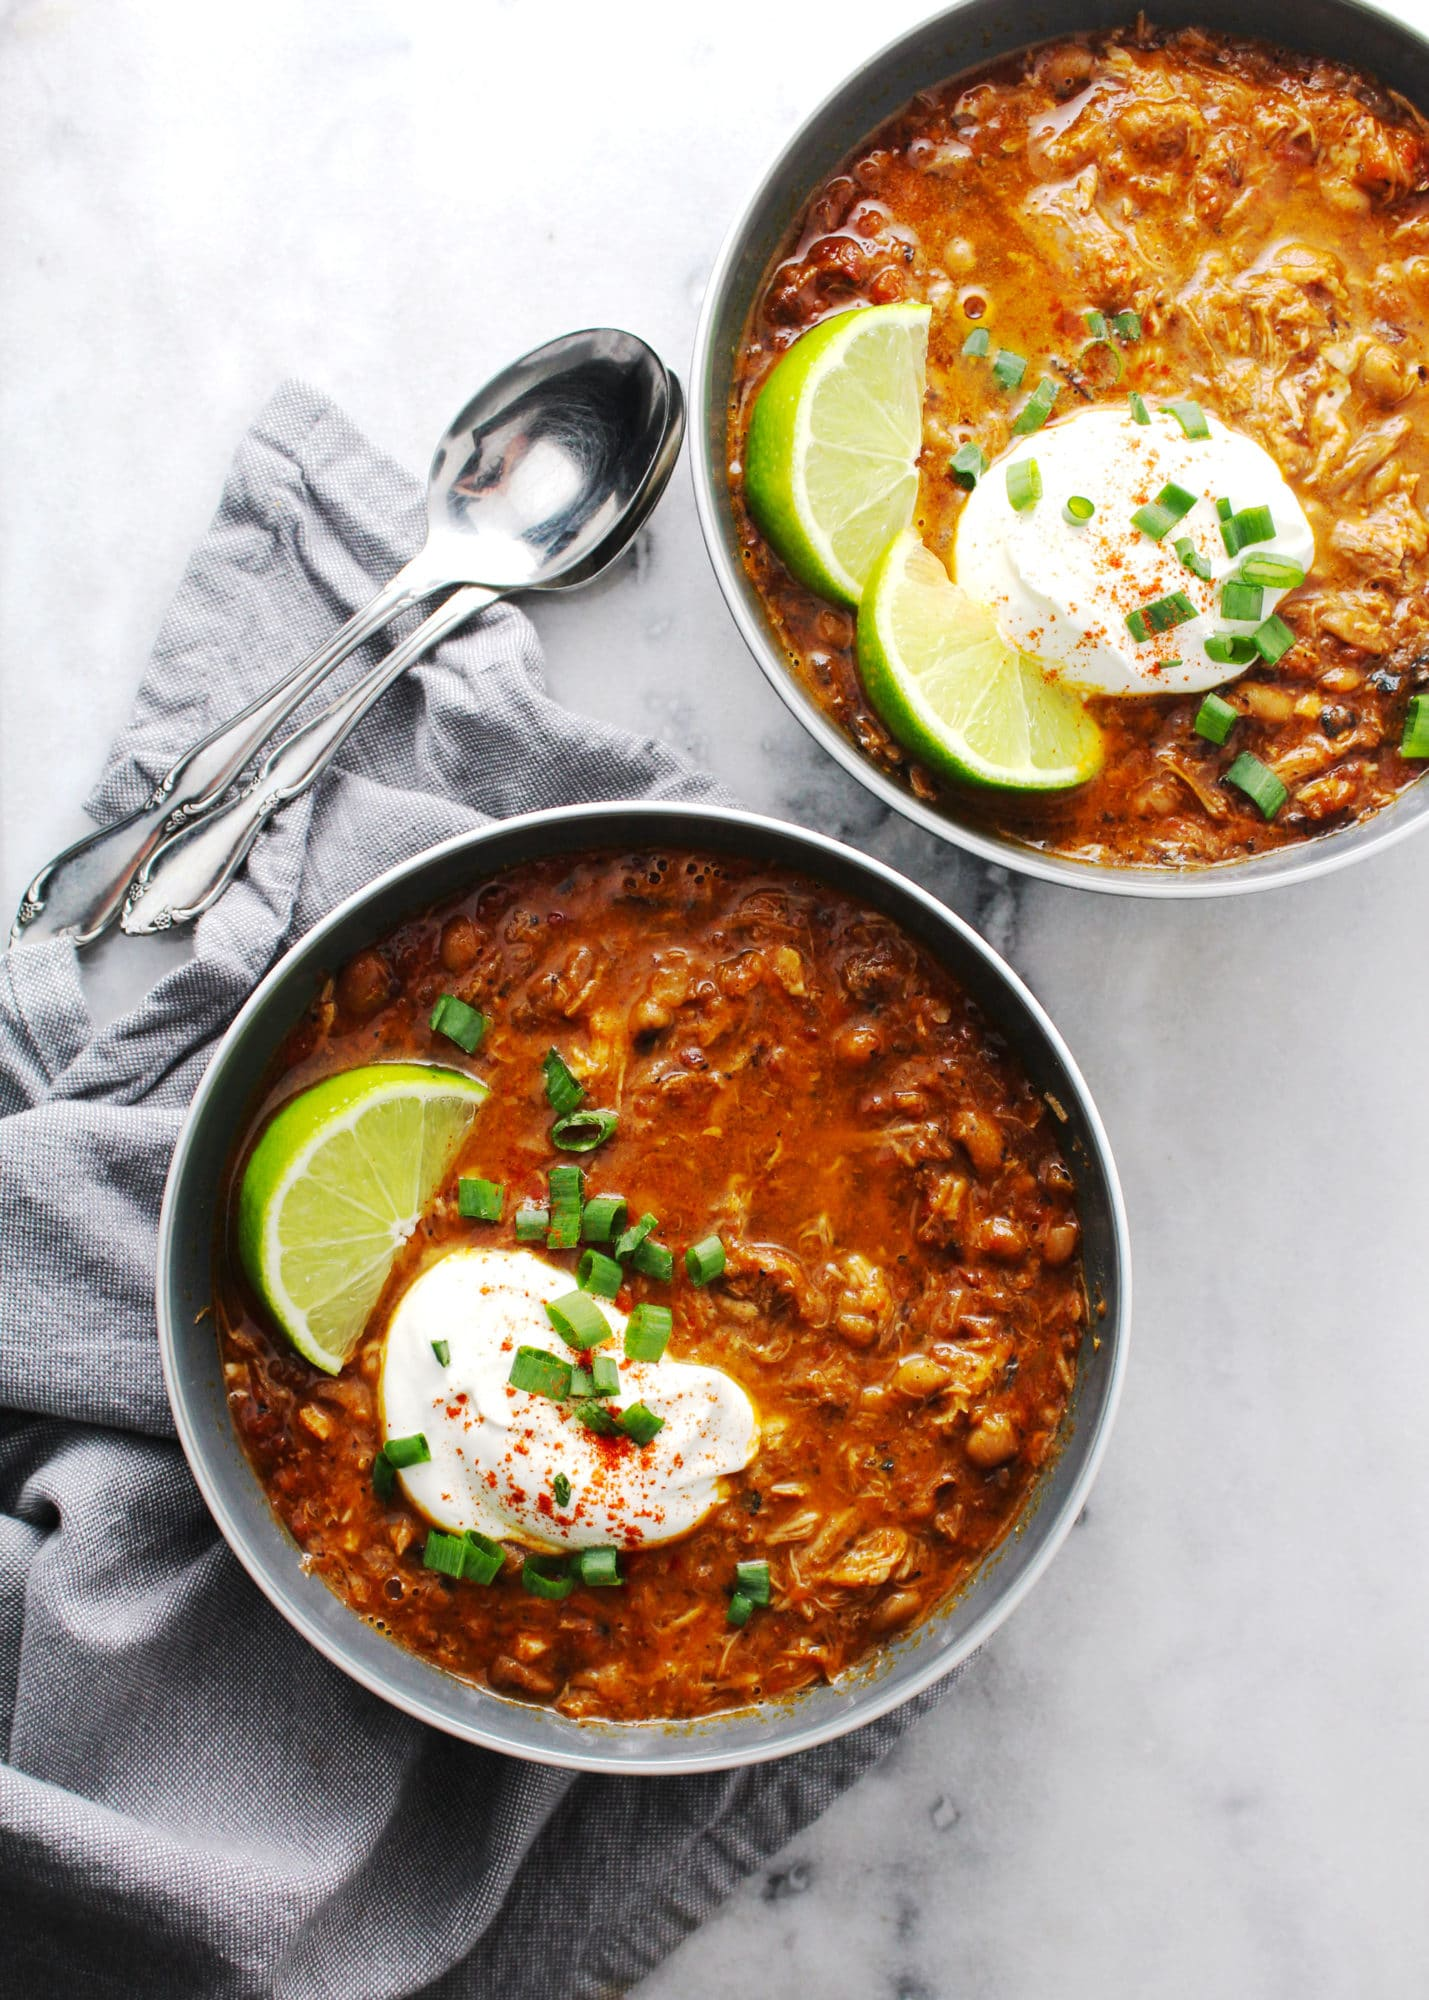 Southern Black Eyed Pea Chili in gray bowls